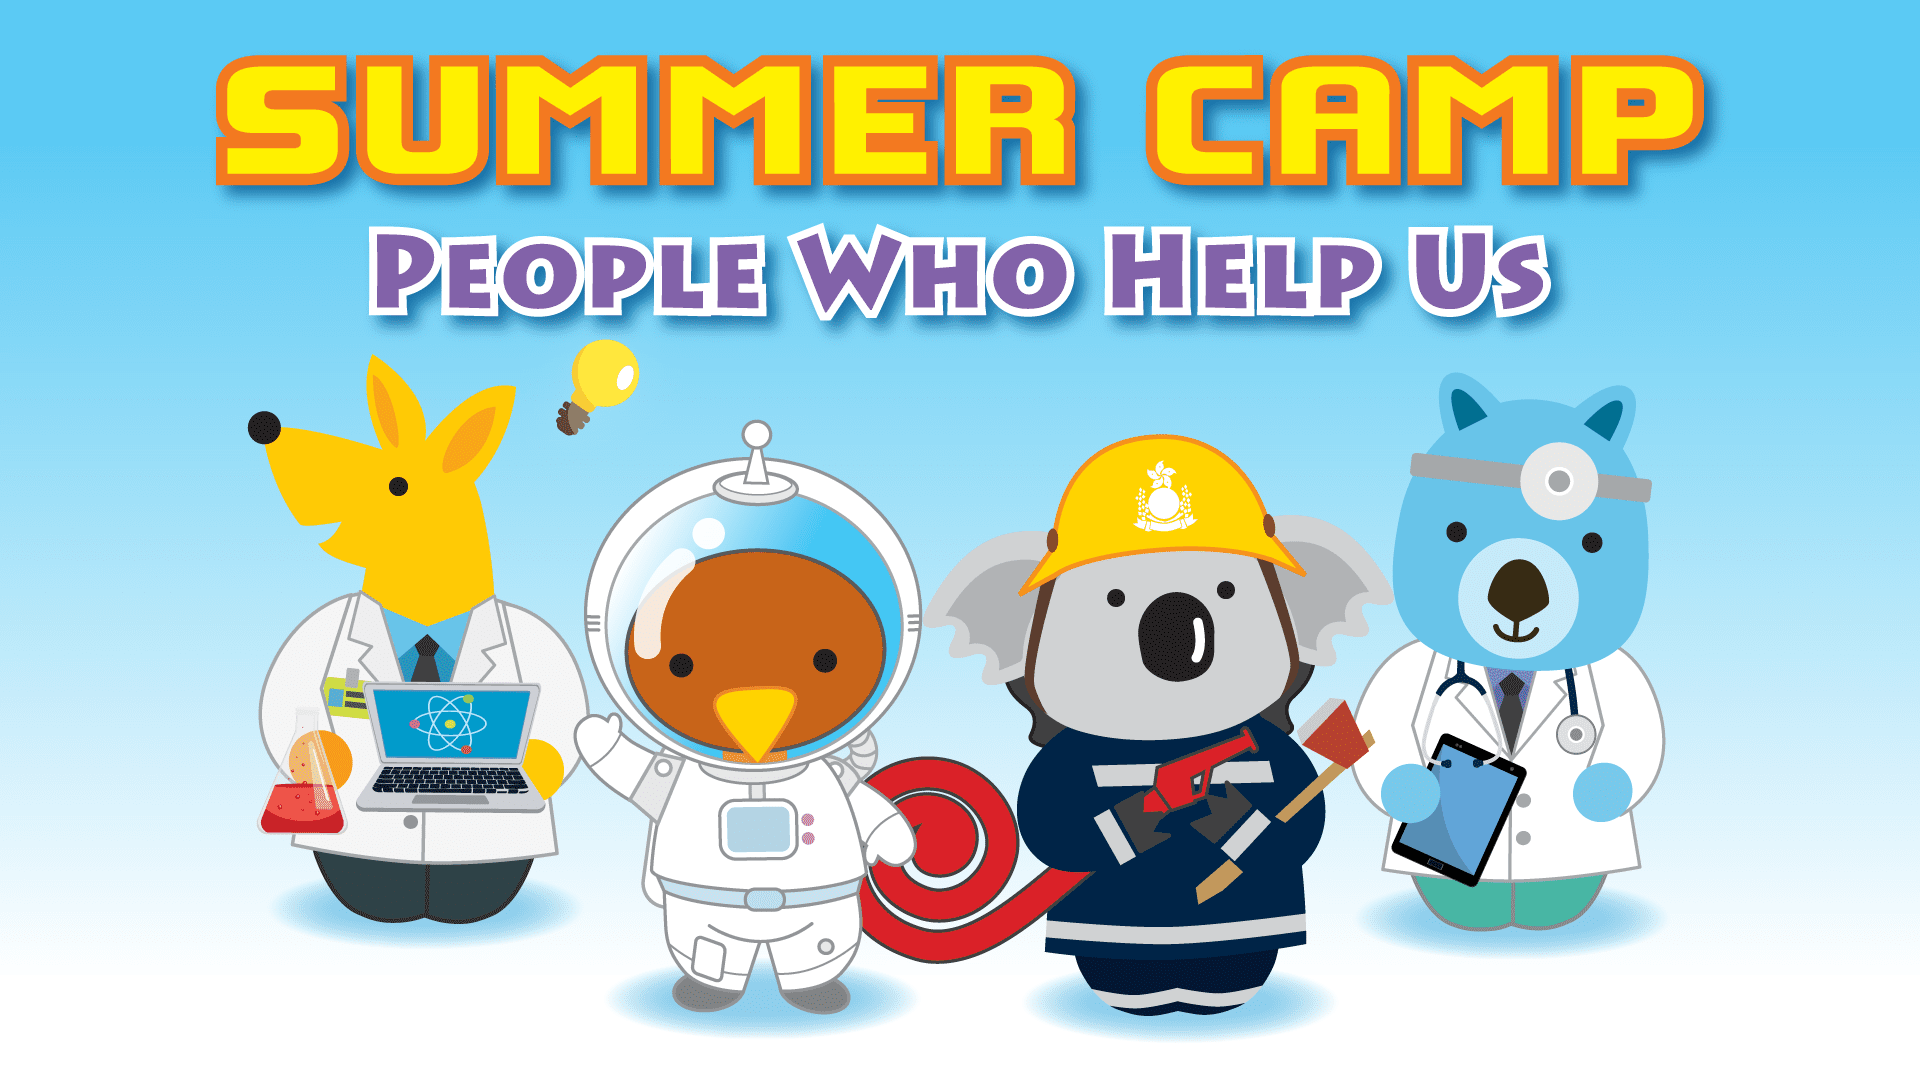 Summer Camp: People Who Help Us